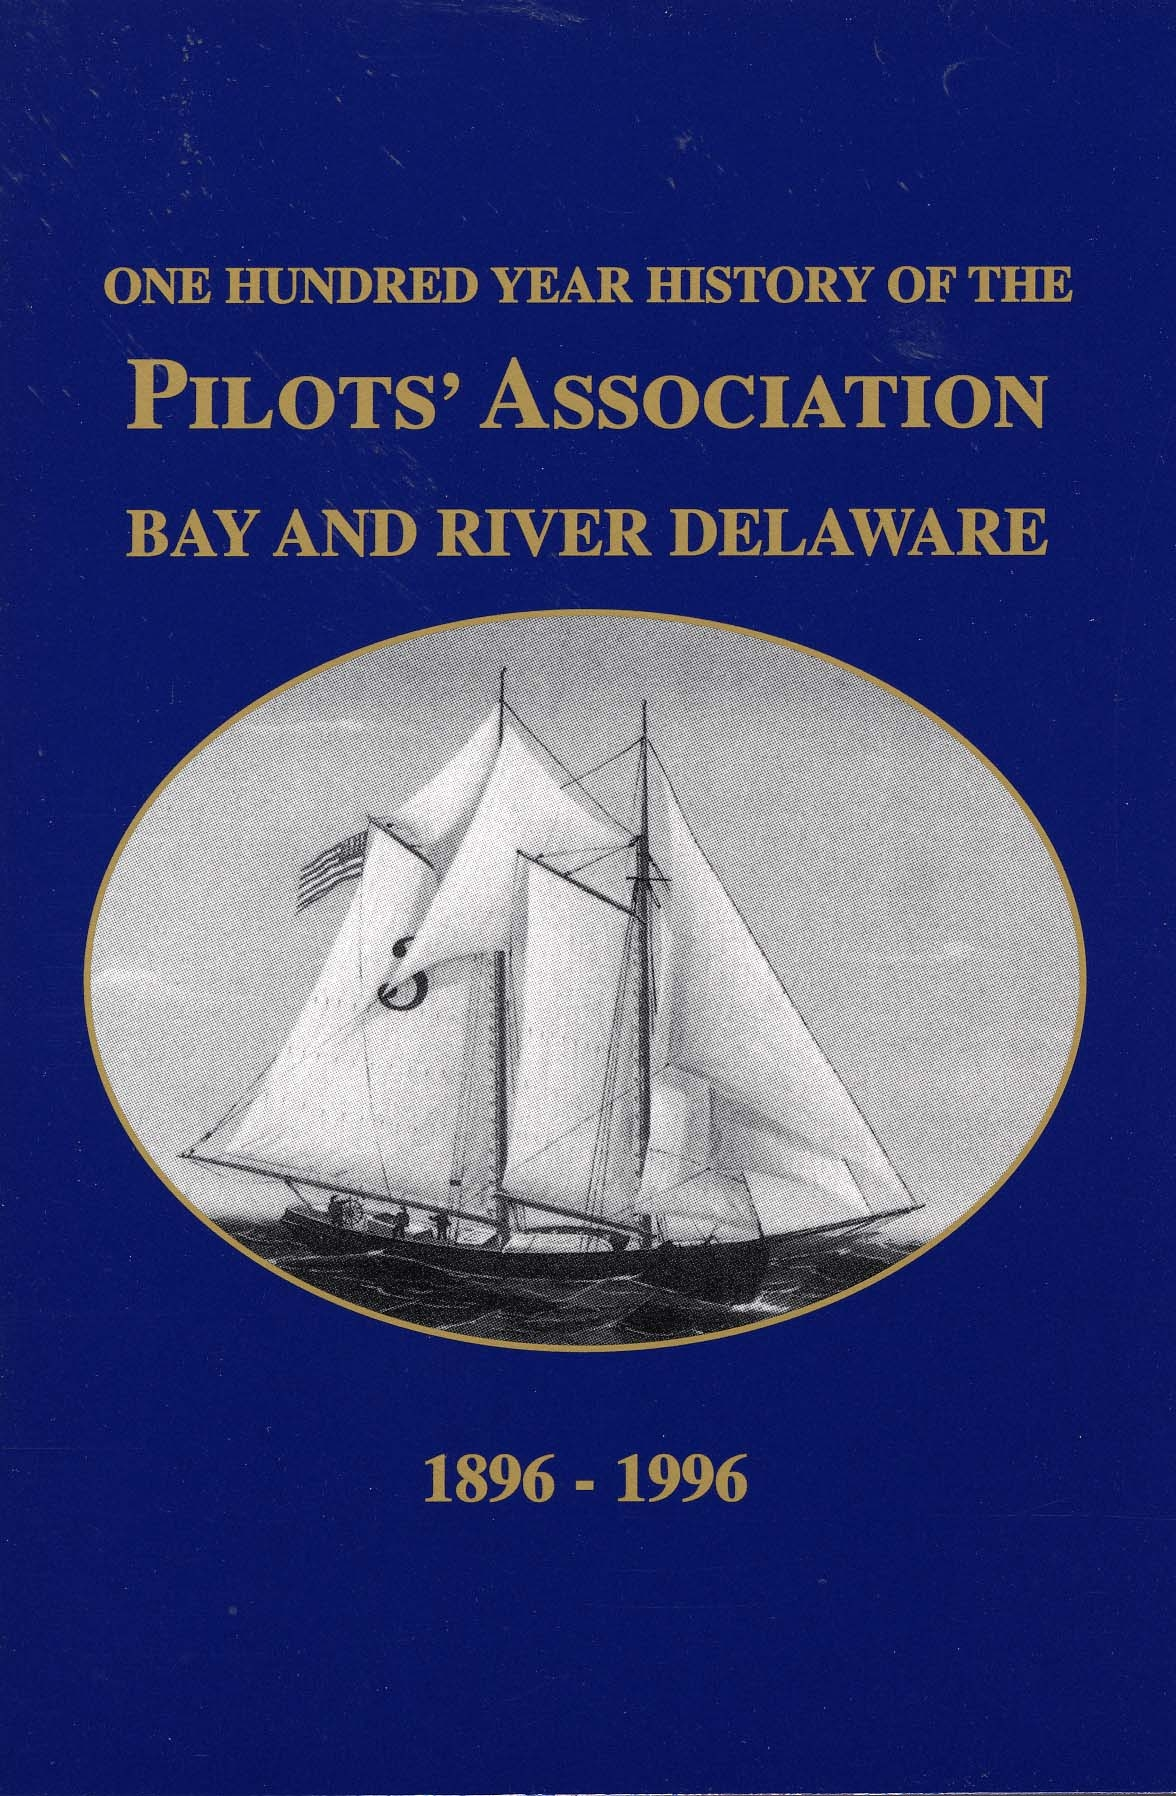 One Hundred Year History of the Pilots' Association Bay and River Delaware, by Andrew Knopp, 1996, 133 pp. Prices reflect the cost of the book PLUS S&H fee of $3.00.